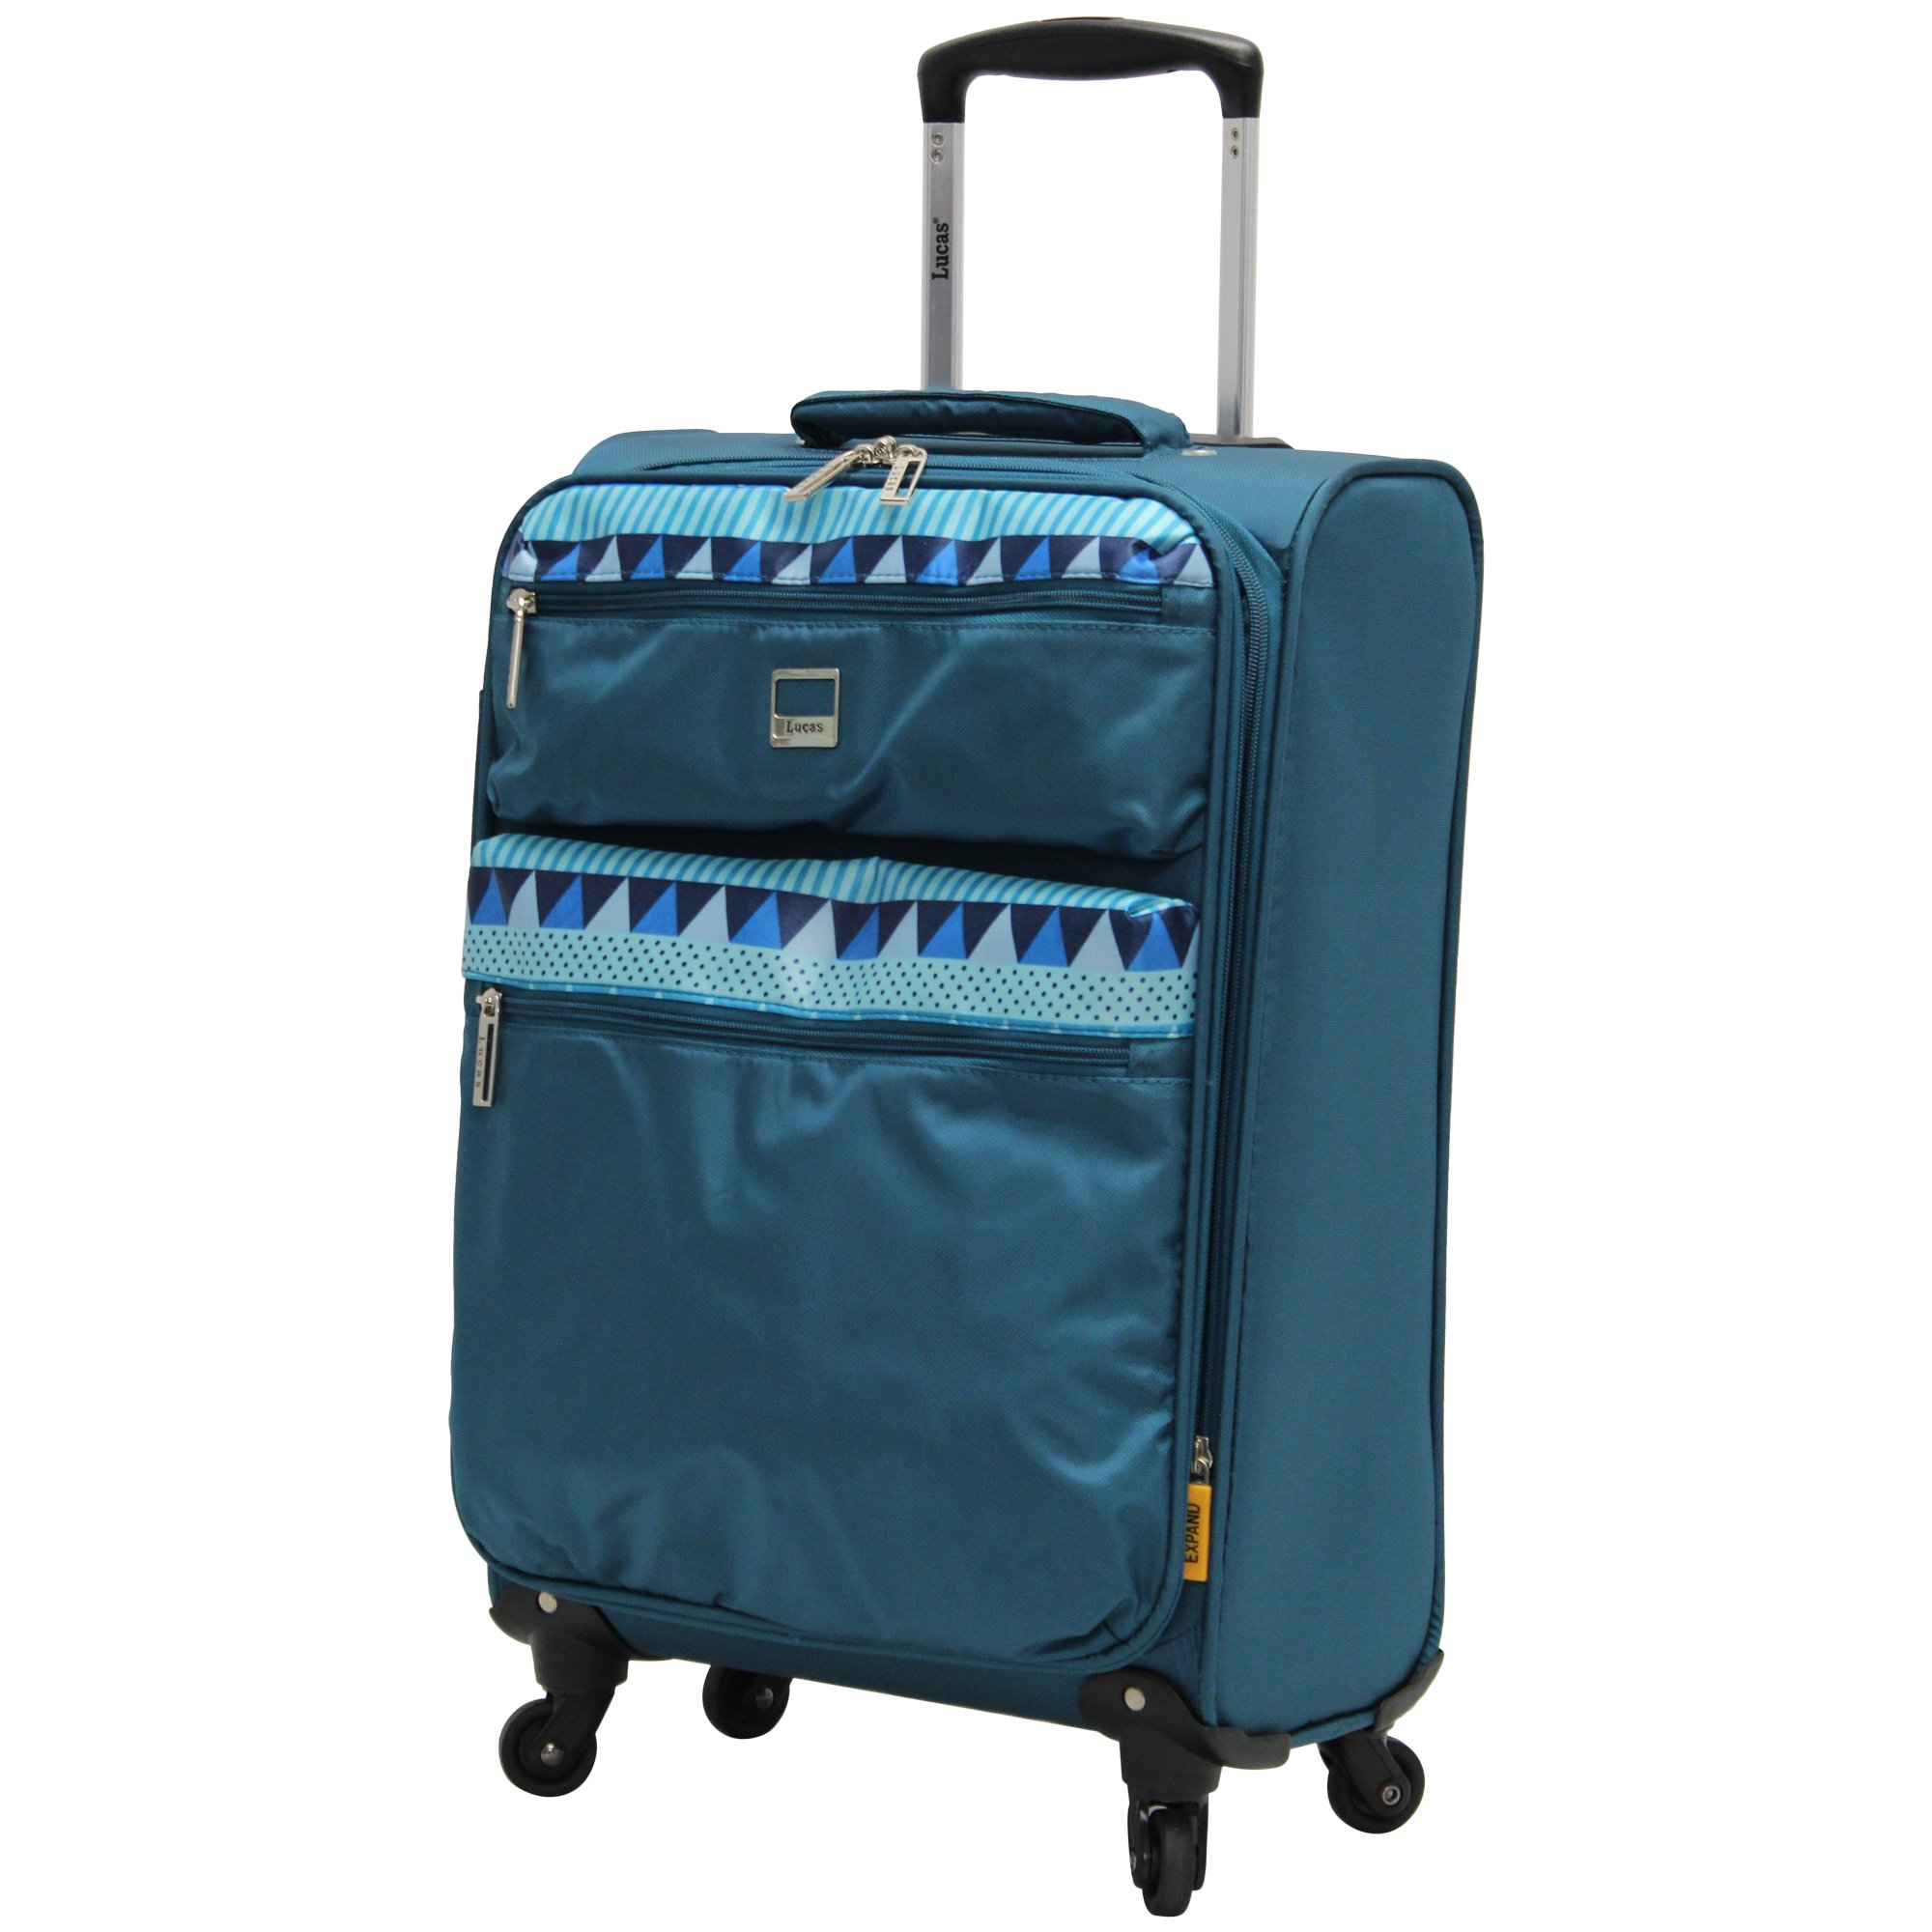 Lucas Luggage Ultra Lightweight Carry On 20 inch Expandable Suitcase With Spinner Wheels (20in, Teal) by Lucas (Image #1)